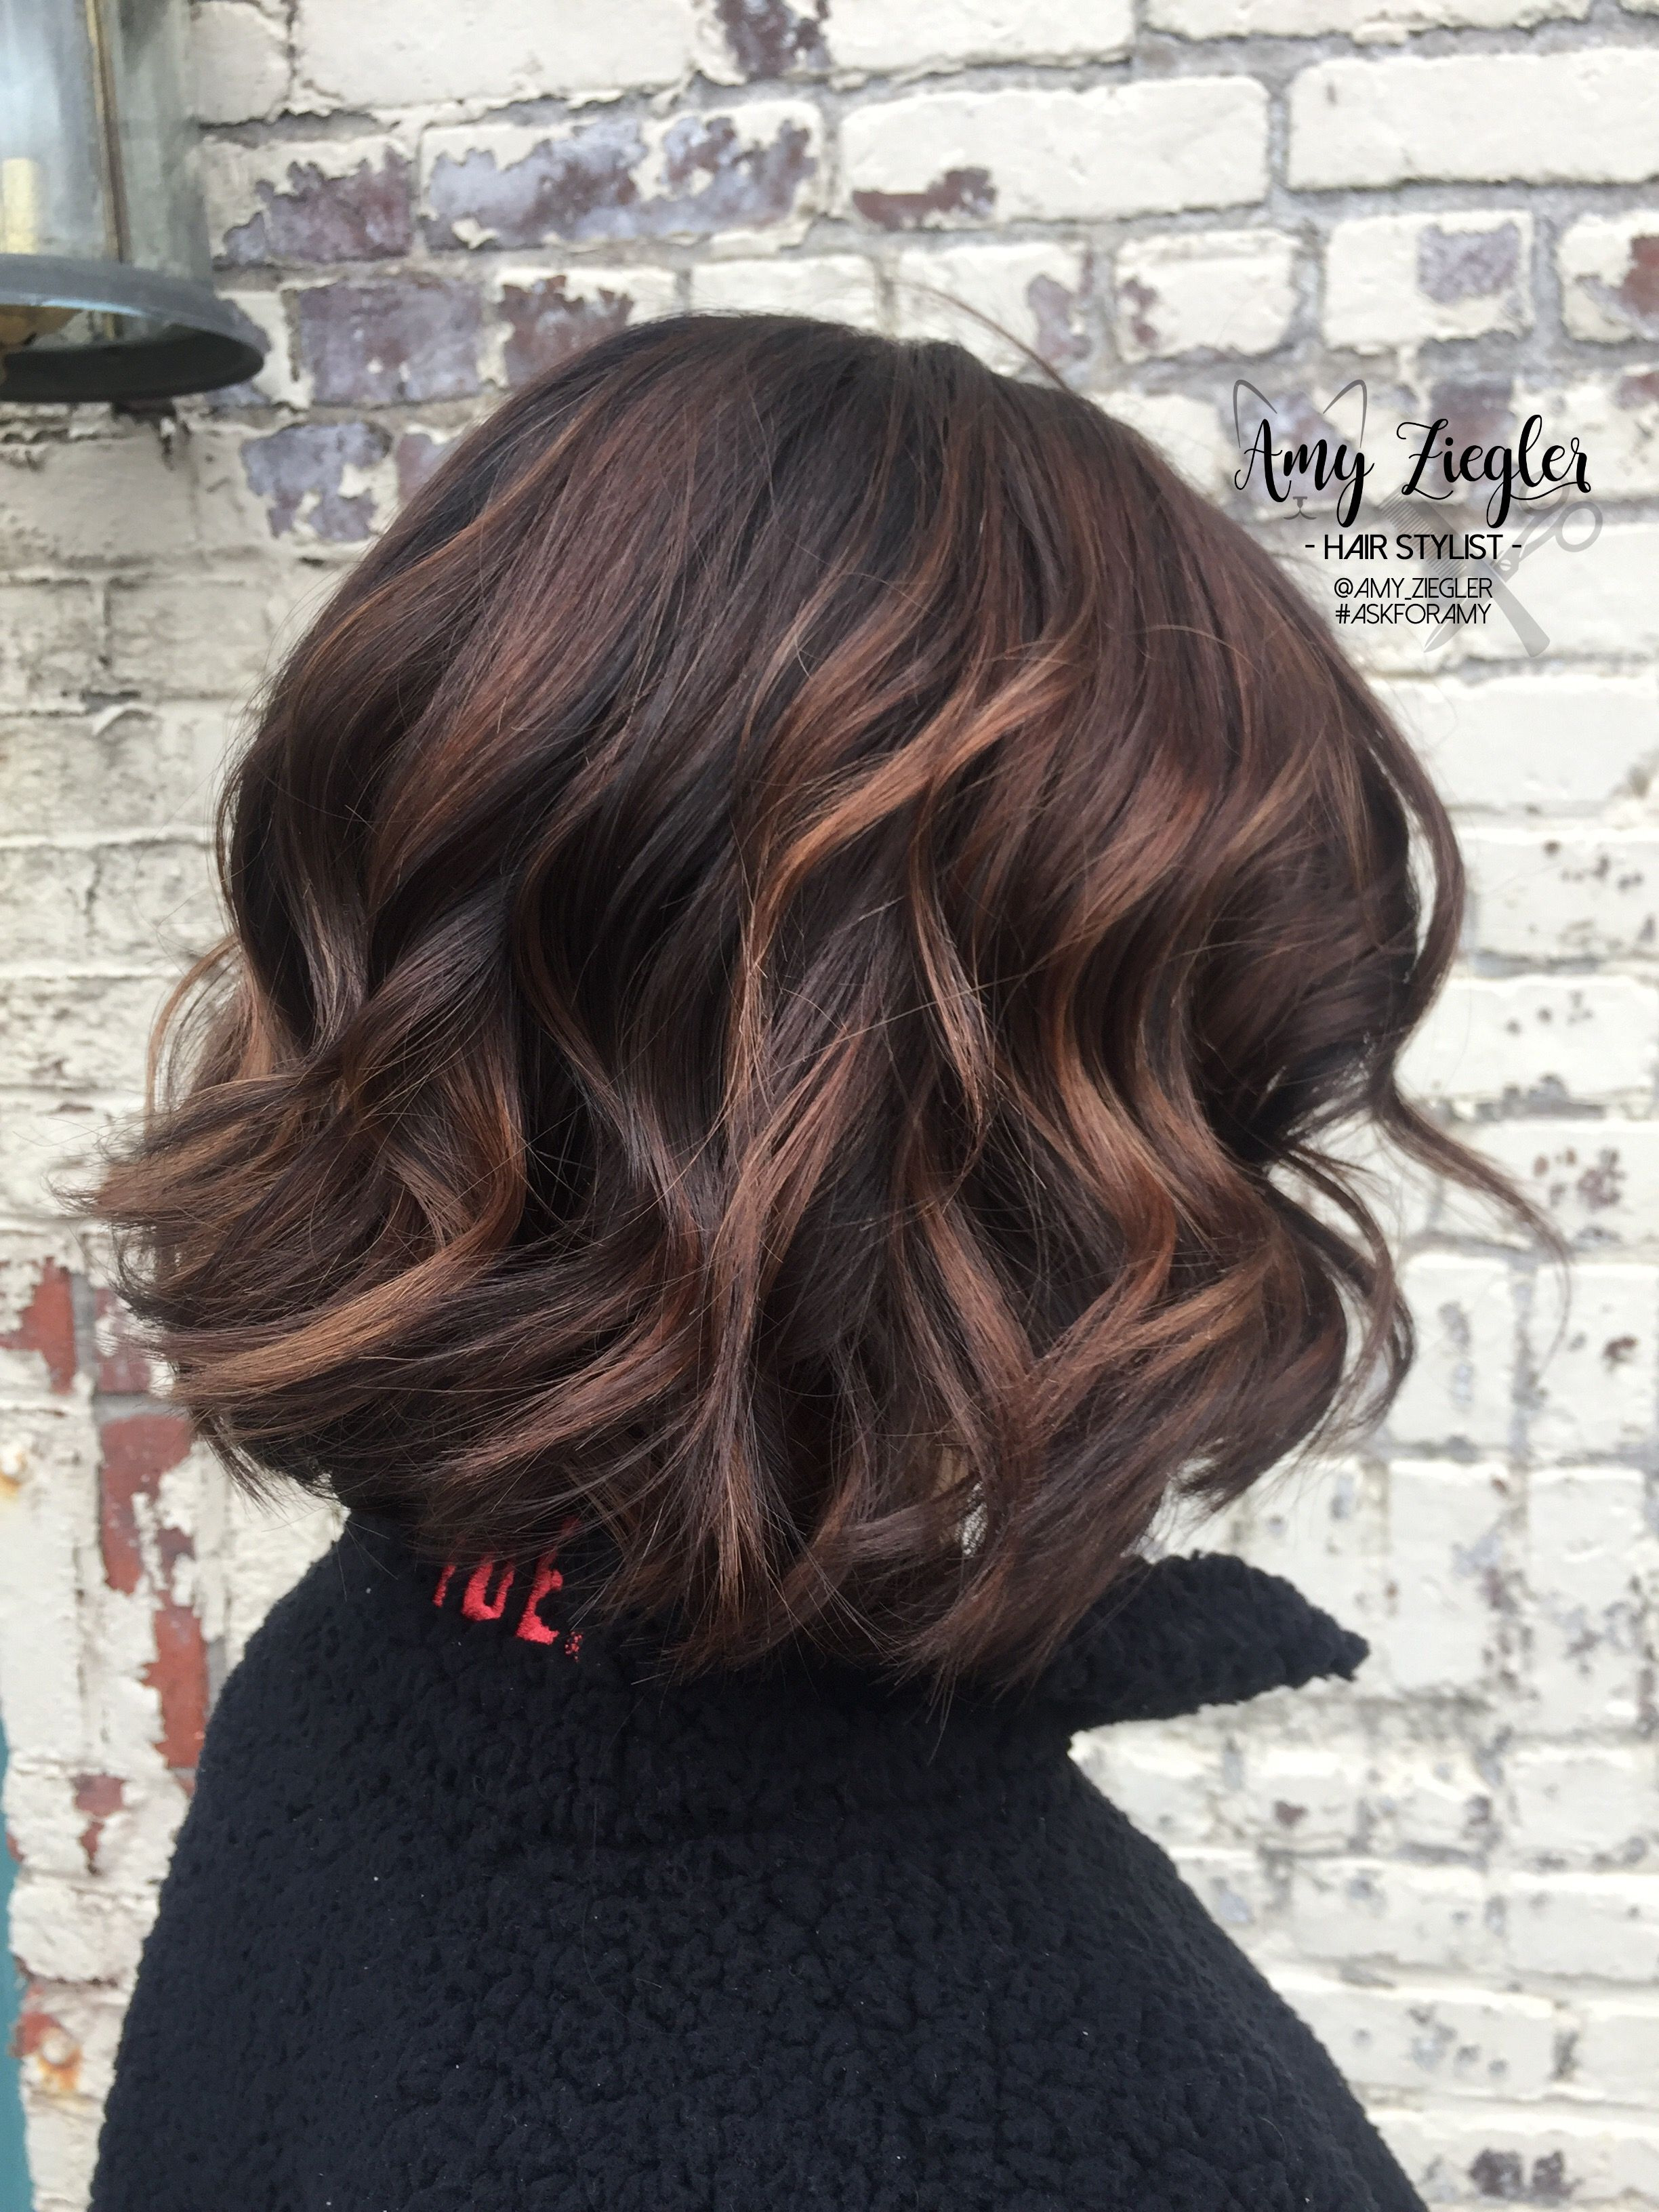 Chocolate Balayage on Short Hair by @amy_ziegler askforamy